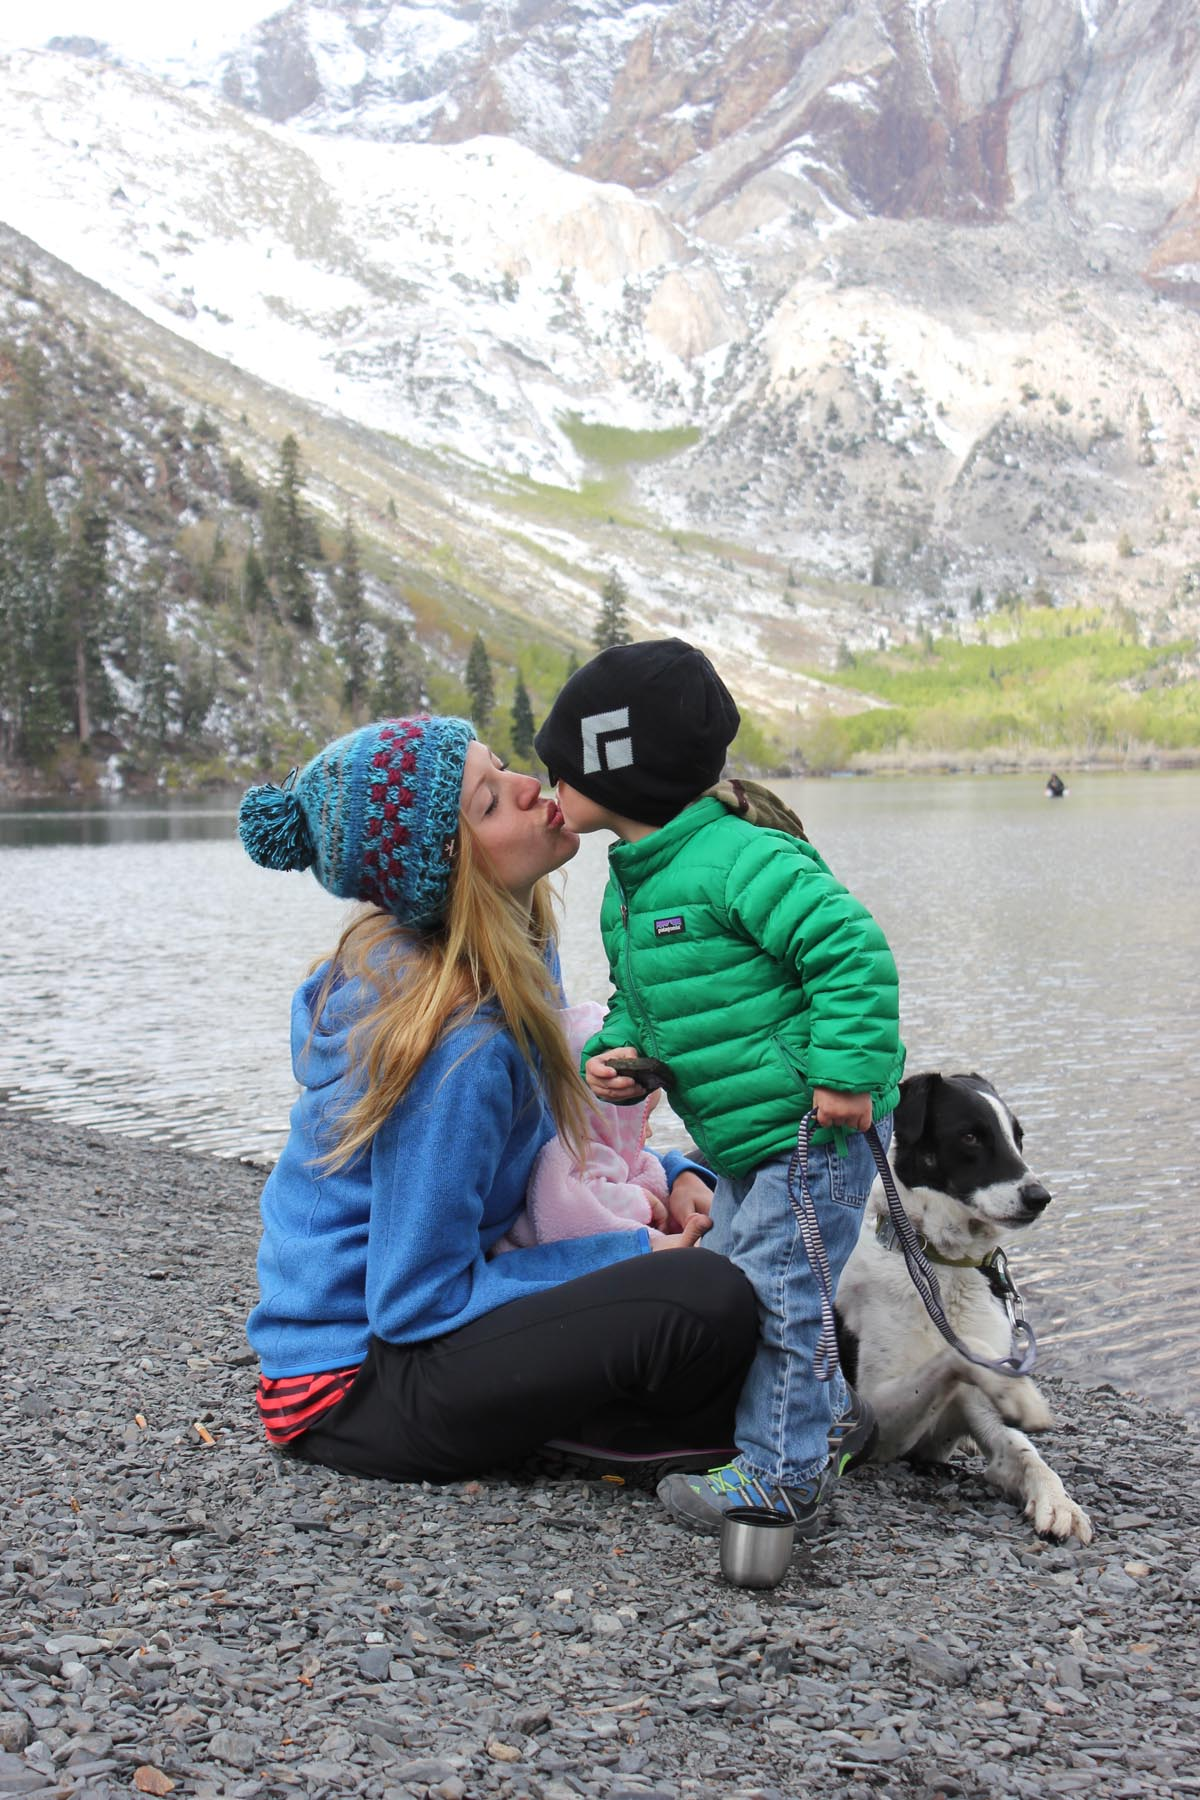 California native Shannon Robertson takes her two young children hiking and camping in the Sierra Mountains regularly. Photo courtesy of Nicklas.